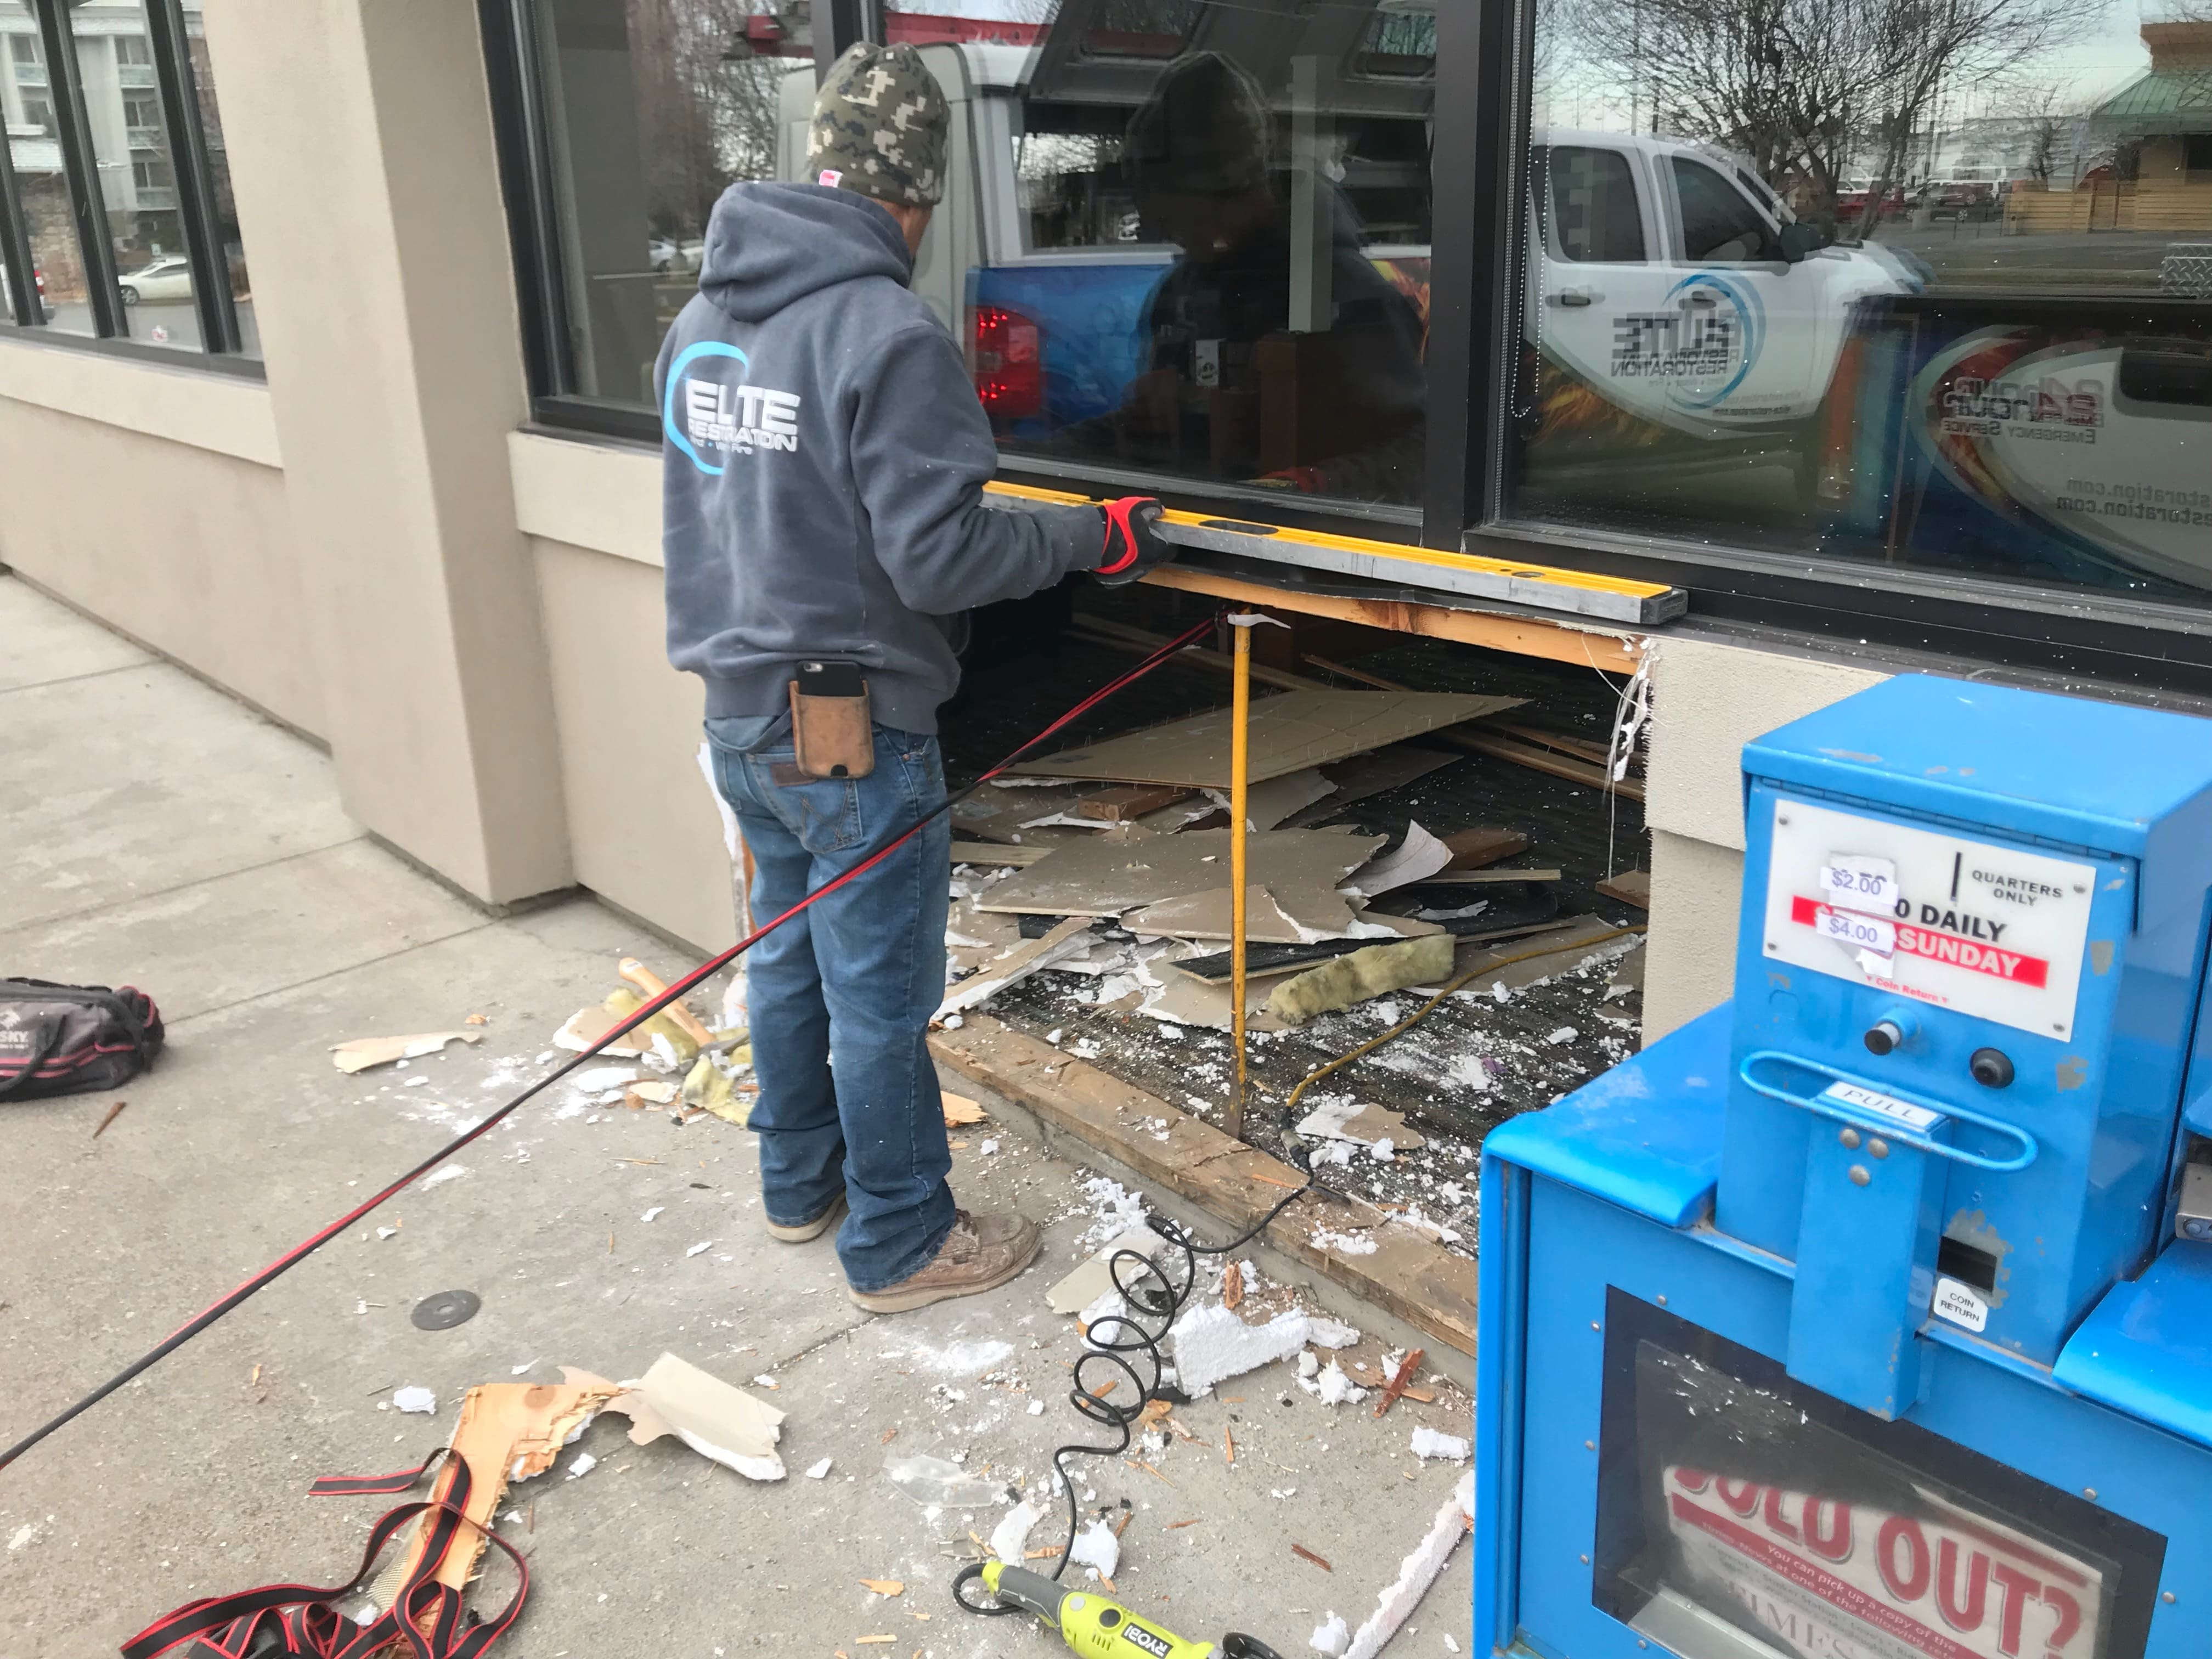 Image: Elite Restoration Tech works at repairing a car sized hole in a Perkins restaurant.